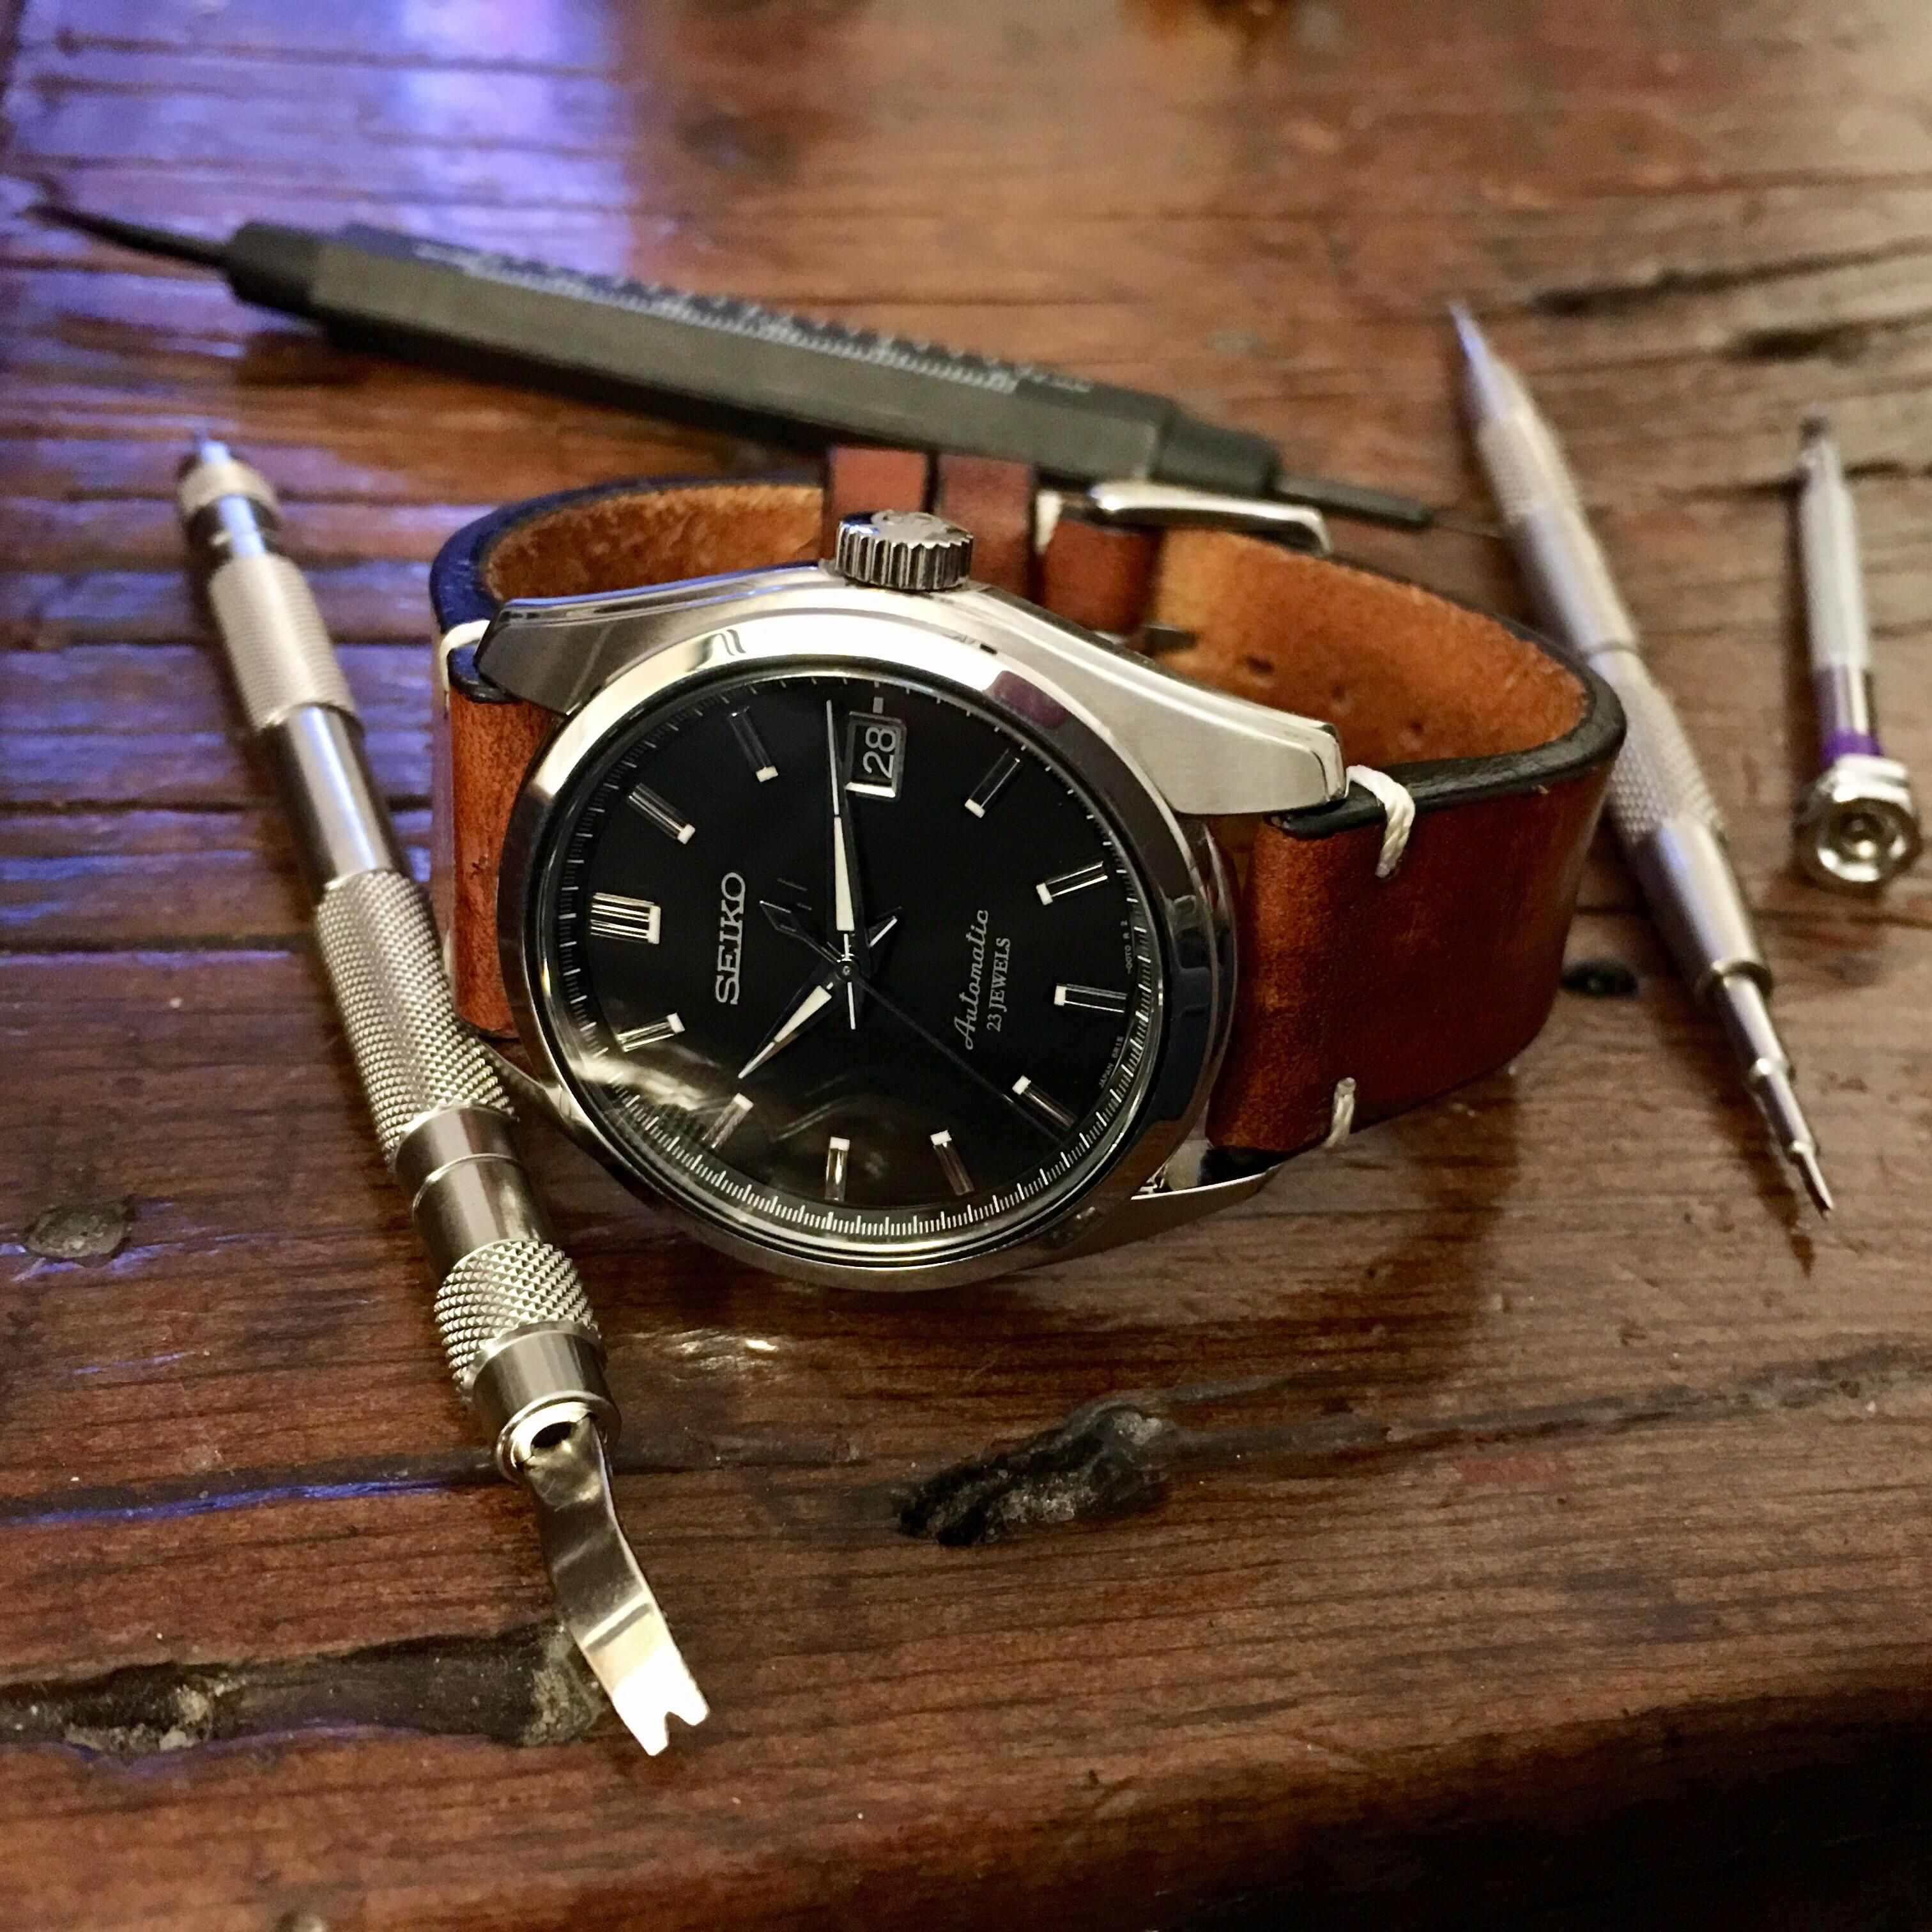 373 points and 69 comments so far on reddit watch pinterest seiko